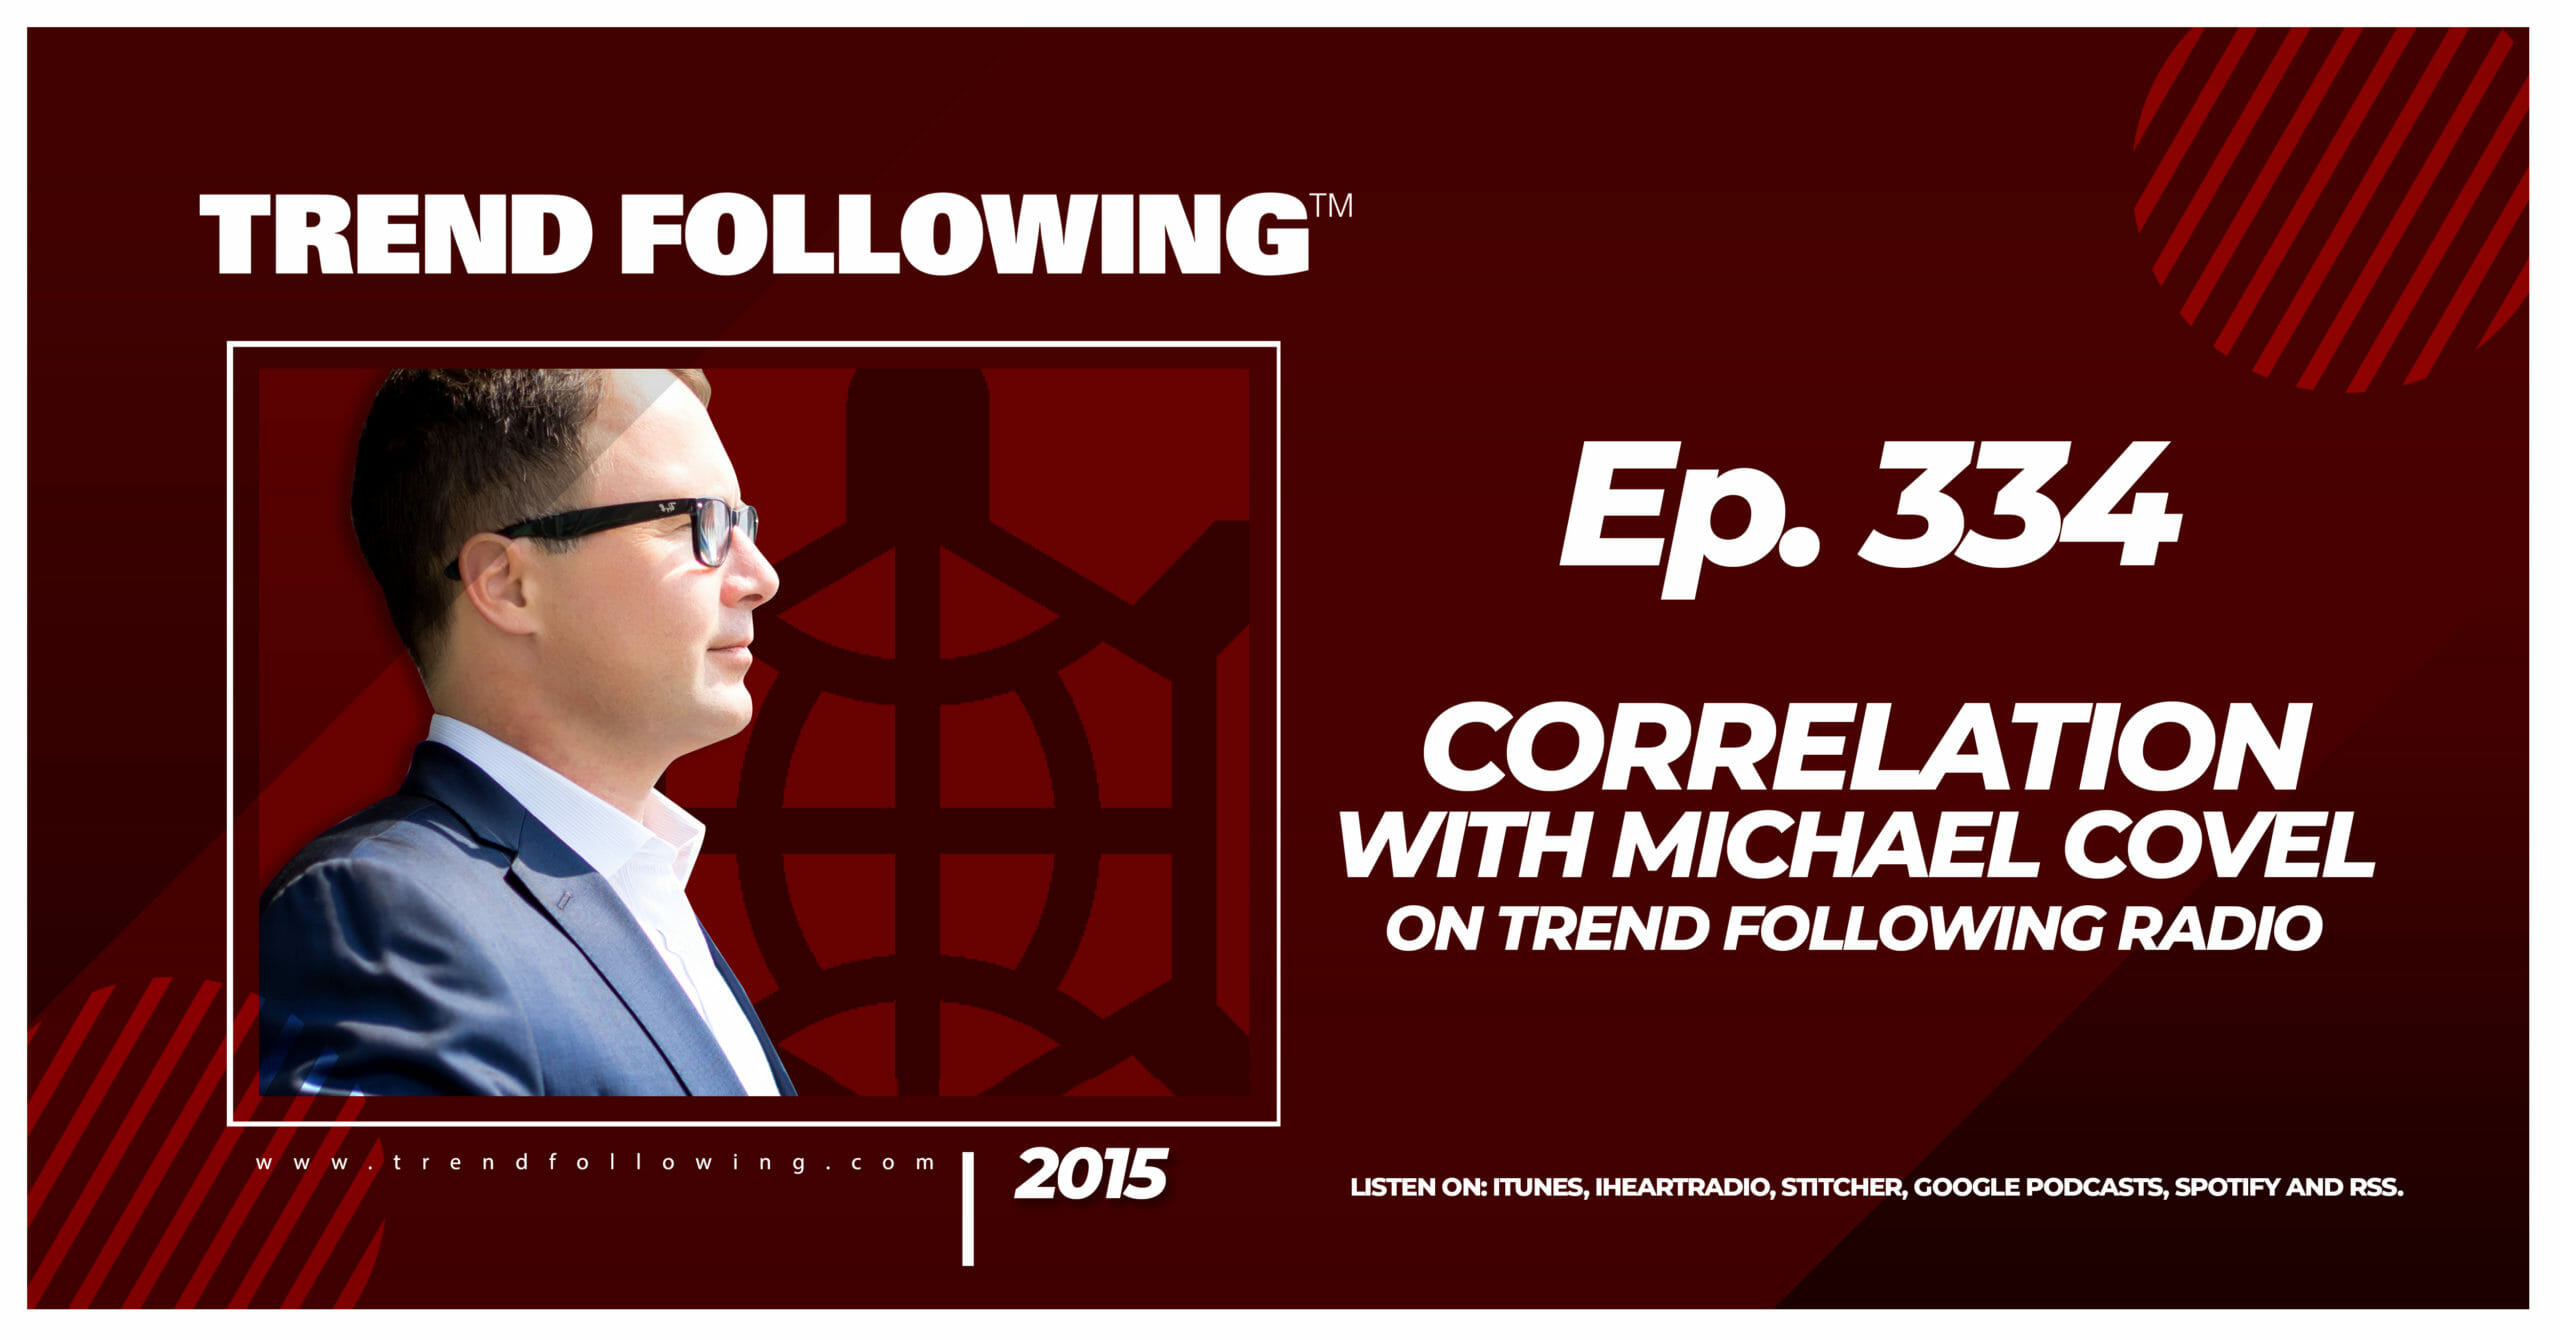 Correlation with Michael Covel on Trend Following Radio